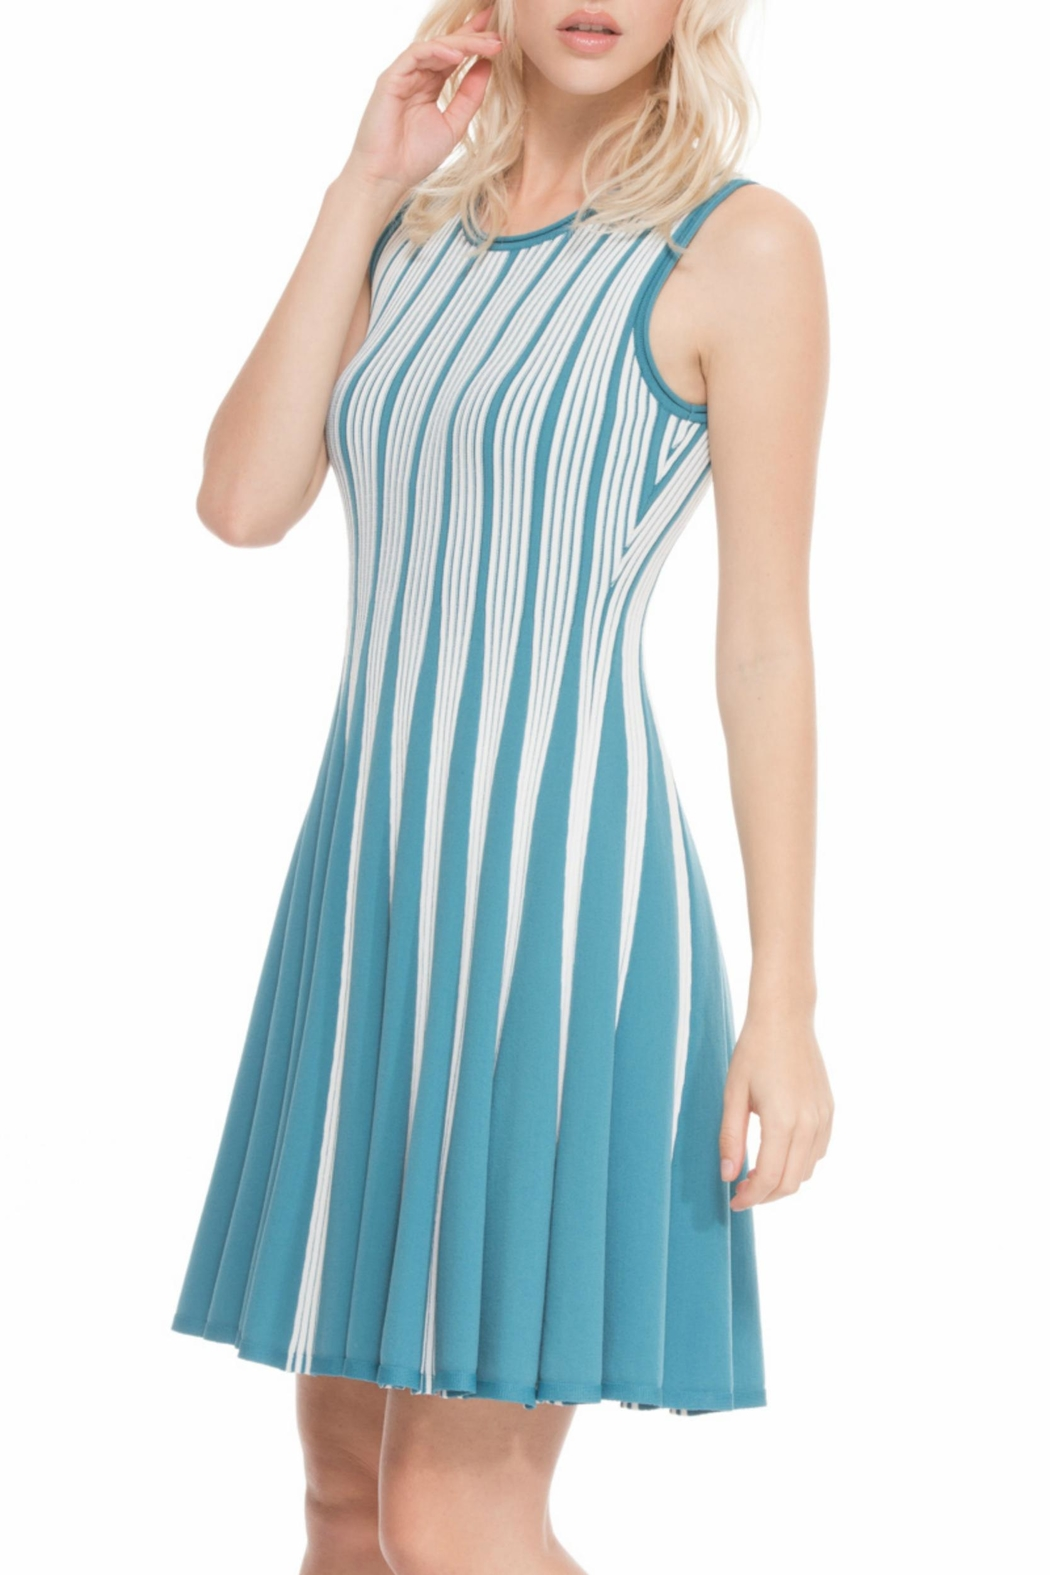 Adore Reversible Knit Dress from Chicago by What She Wants Boutique ...